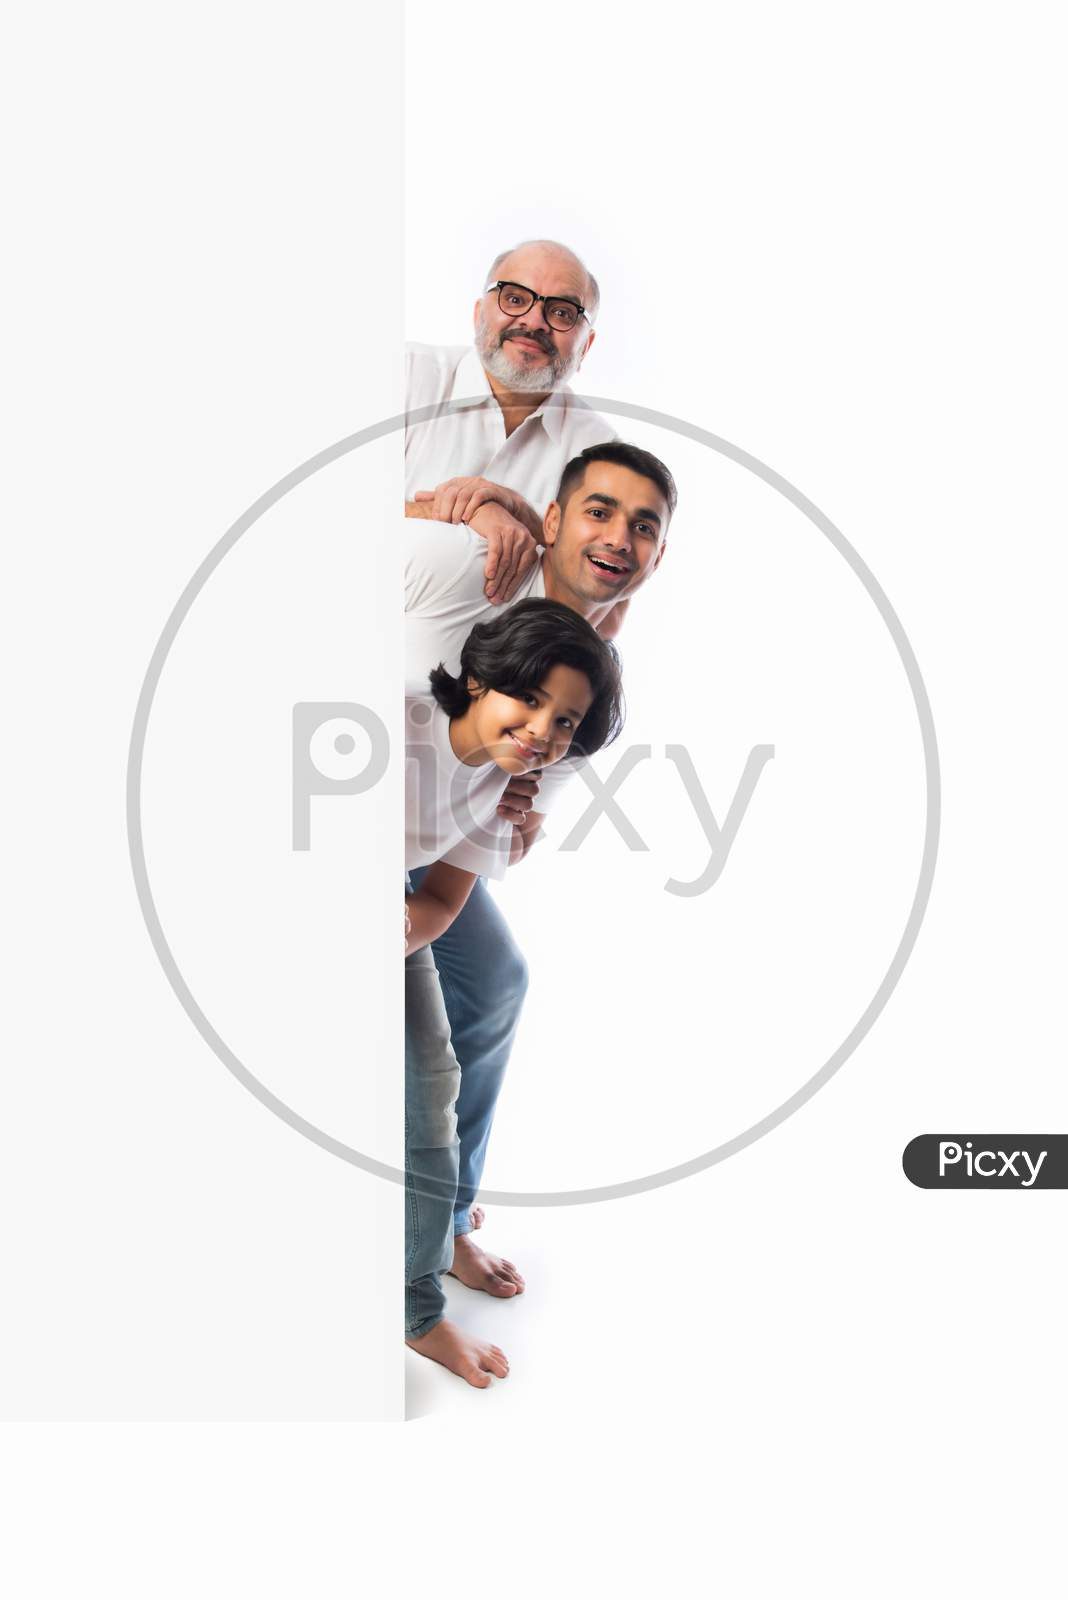 Indian Happy Family Holding Or Presenting White Board, Wall Or Placard